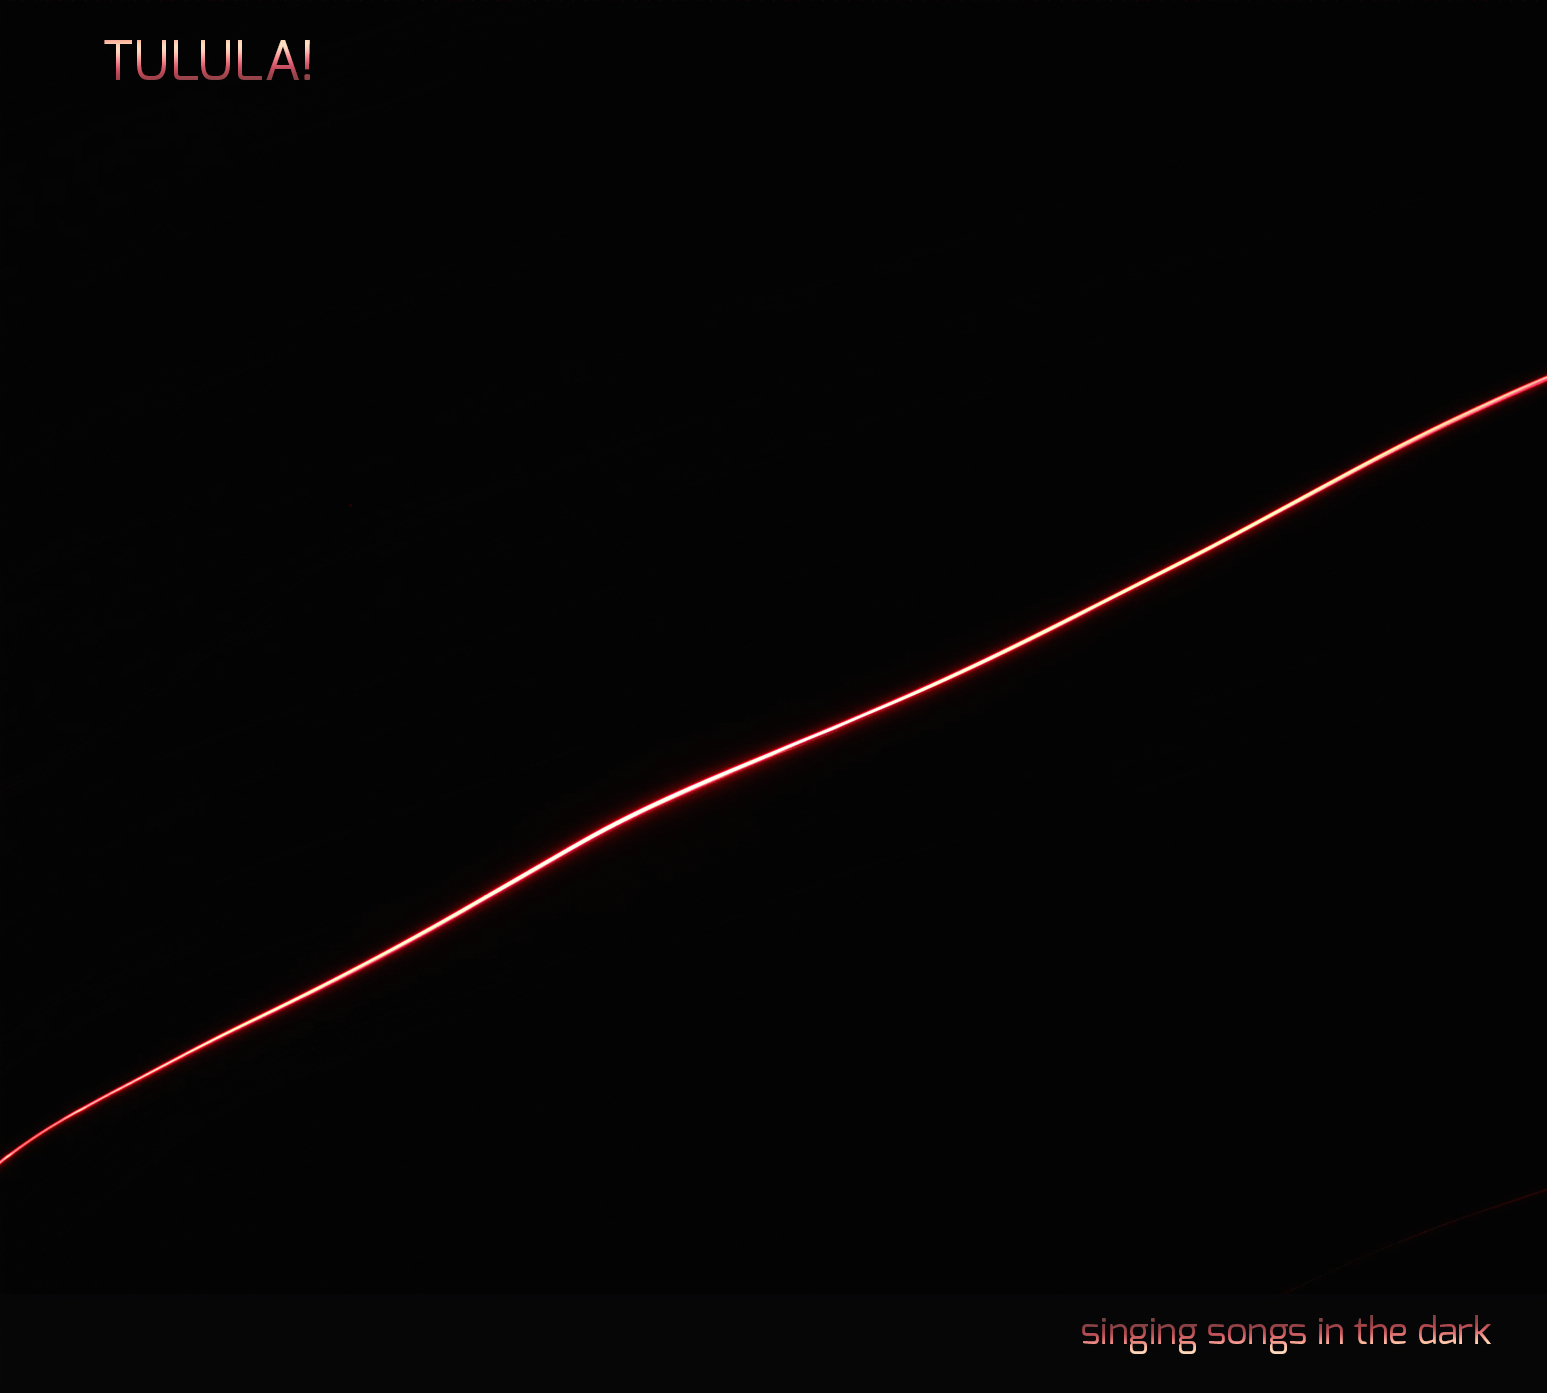 Tulula_Singing-Songs.jpg